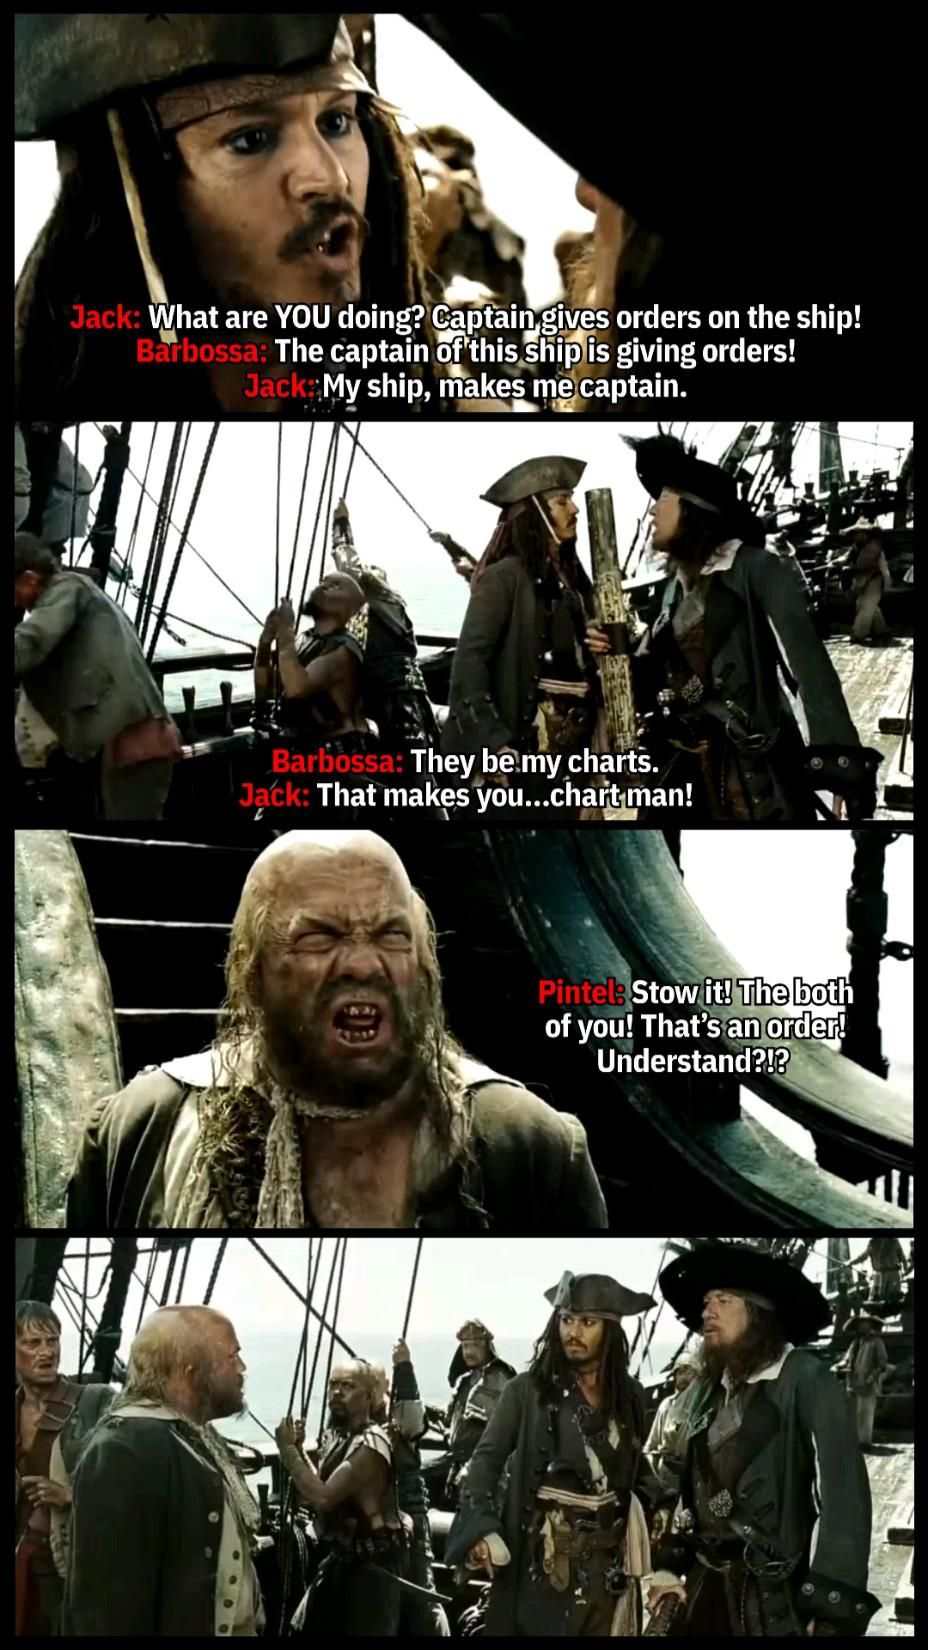 If you want to be Captain then, Act like Captain Jack Sparrow and Captain Barbossa.